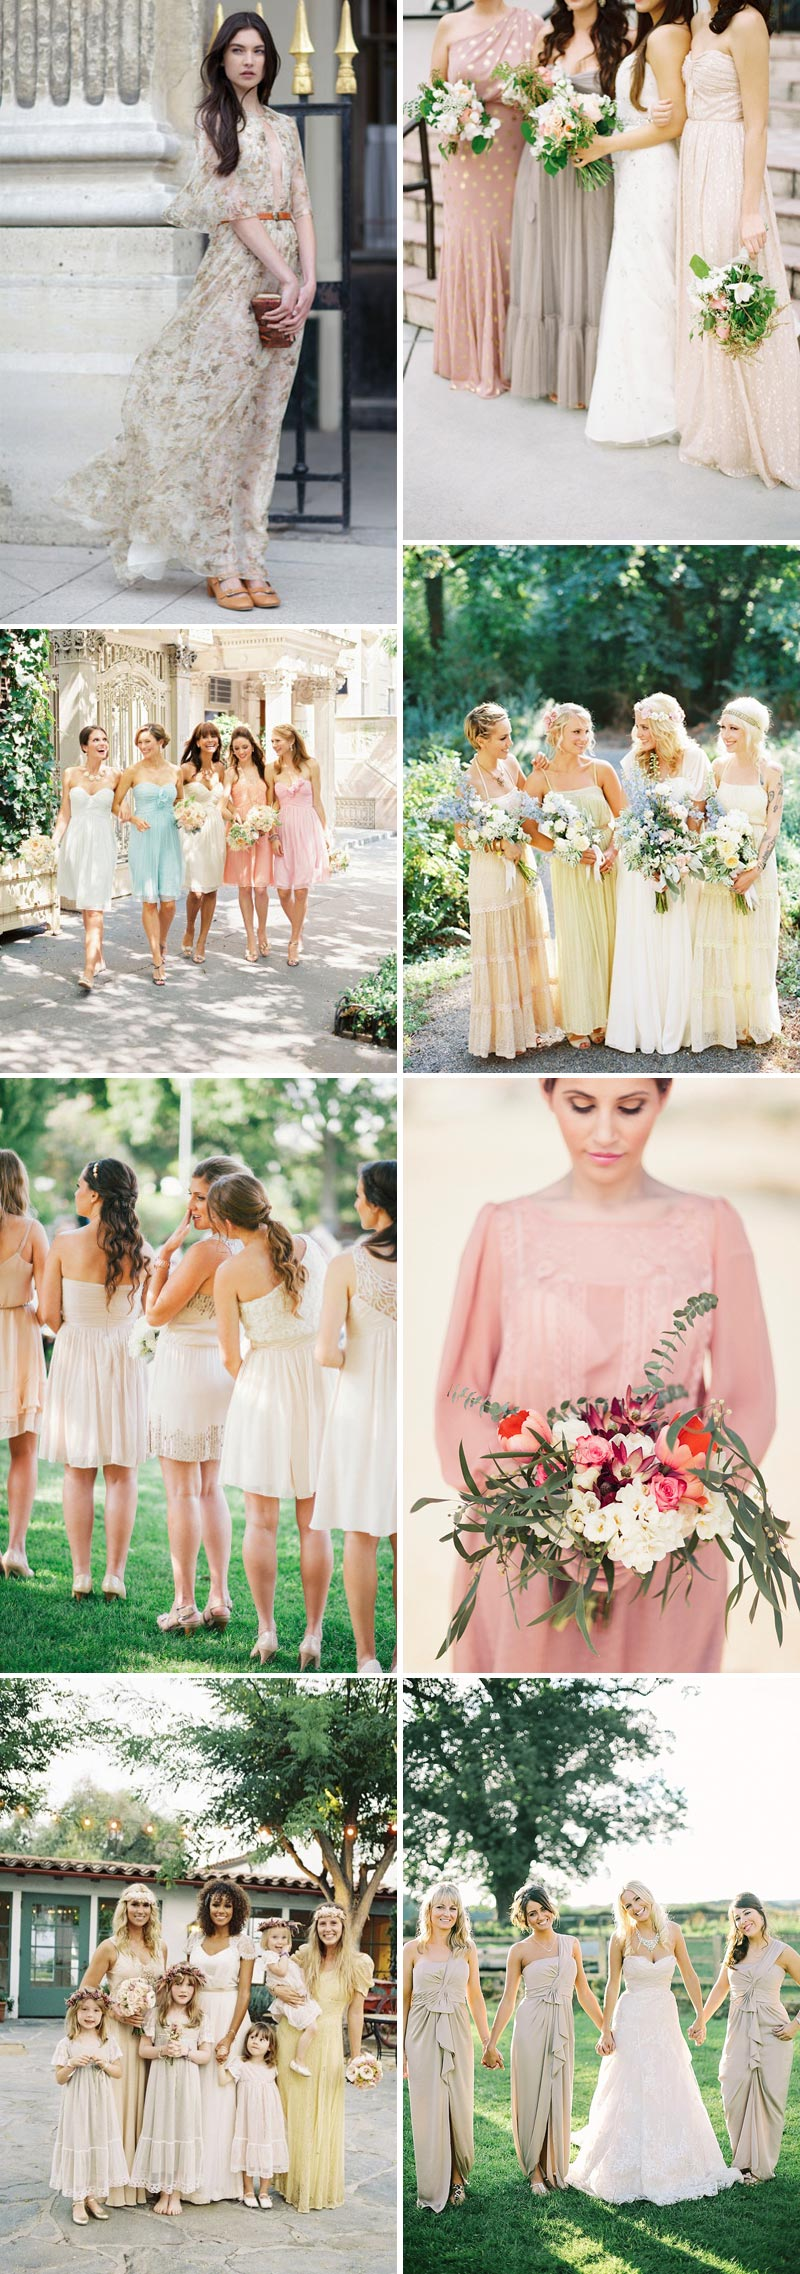 Contemporary bridesmaid dress archives rock my wedding uk sorbet shades peach lemon blue lime bridesmaid dresses neutral ombrellifo Images